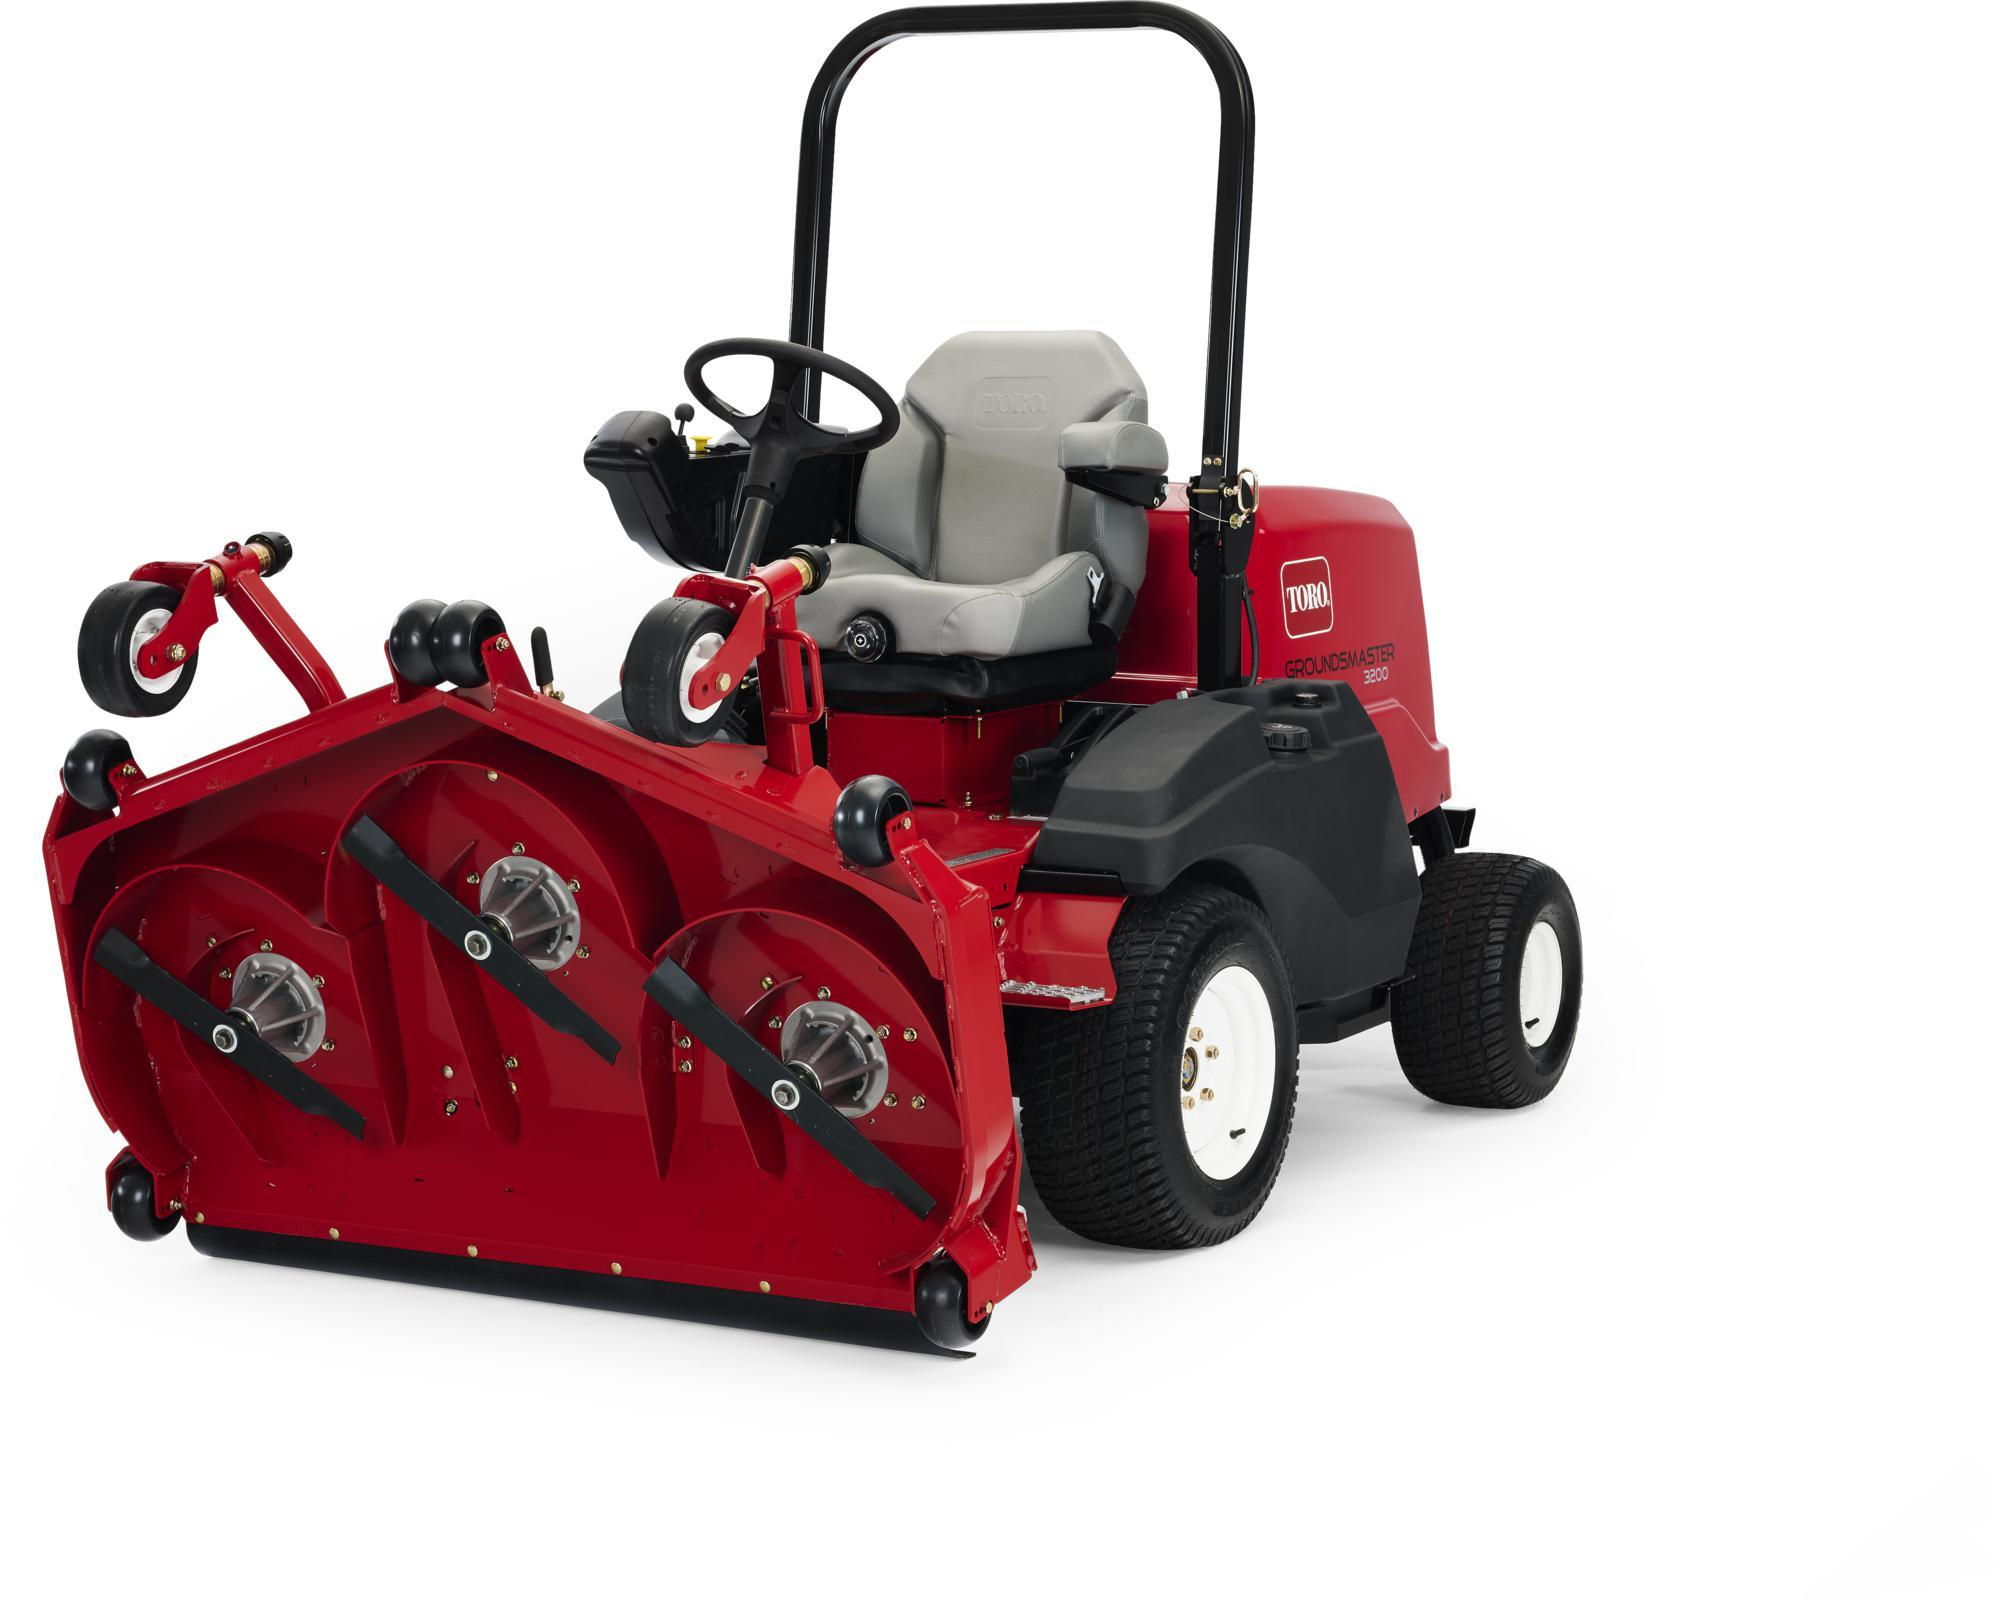 The new Toro Groundsmaster® 3000 Series Out-Front mower